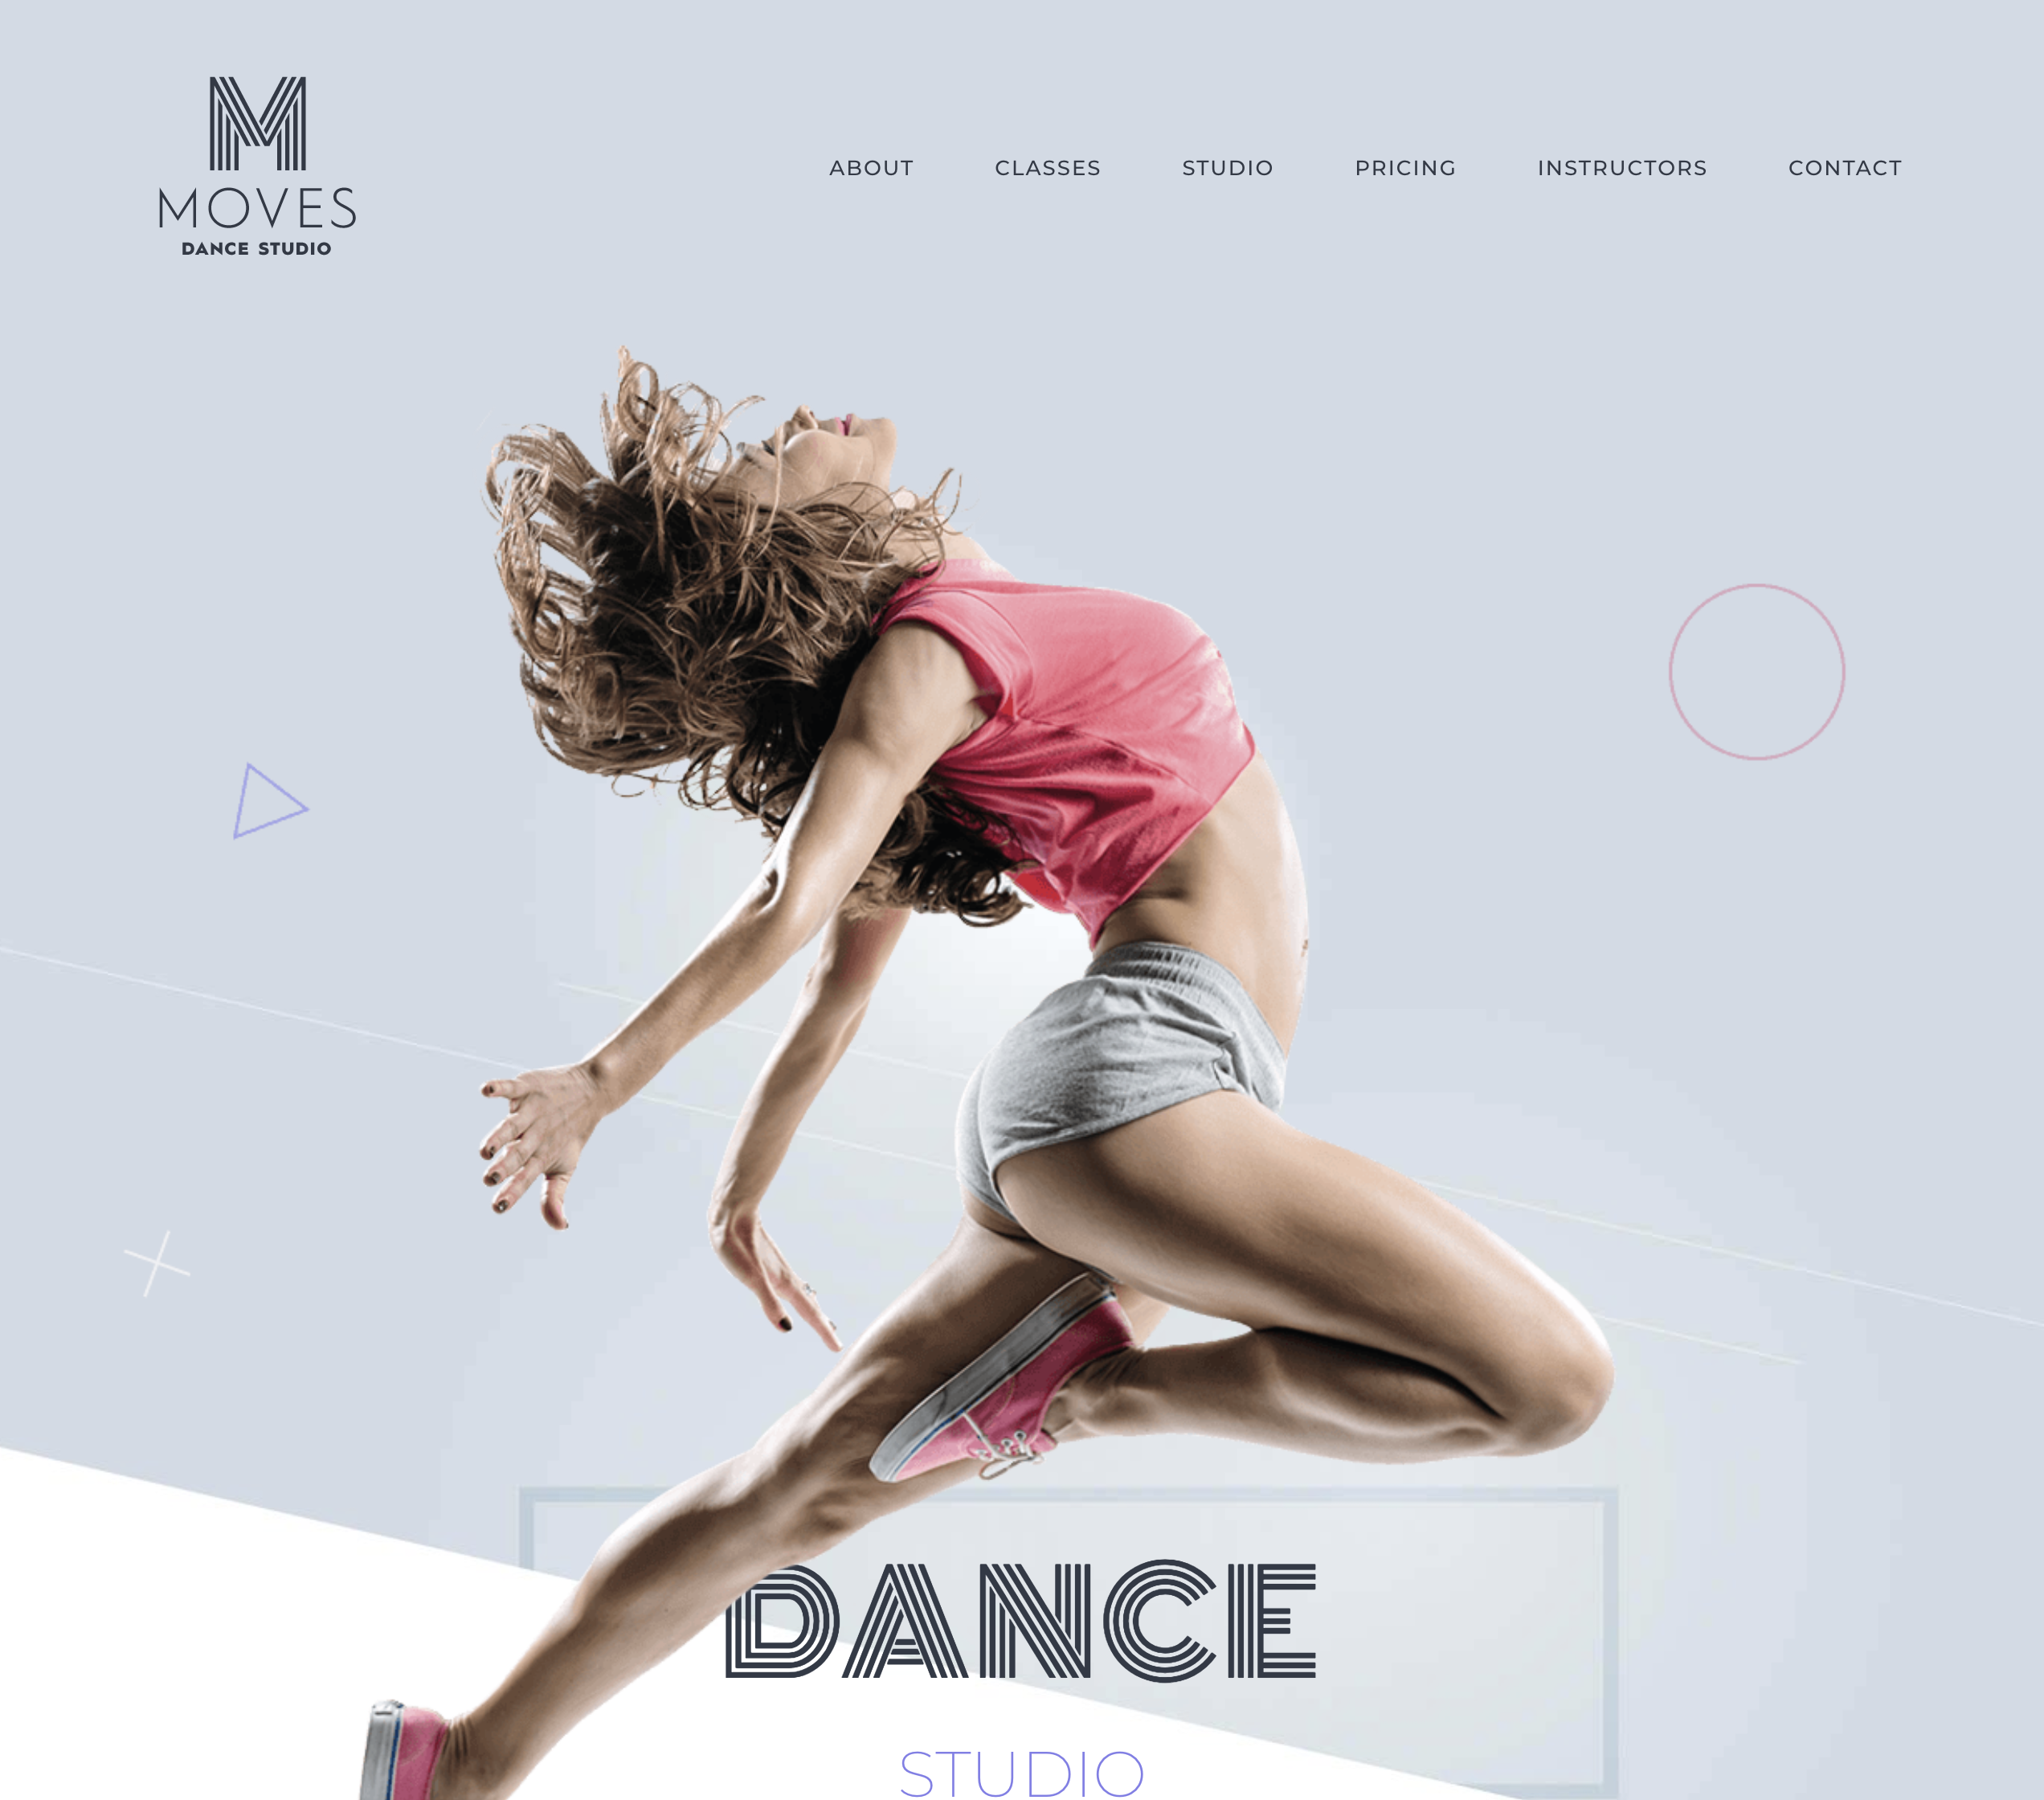 dance website design